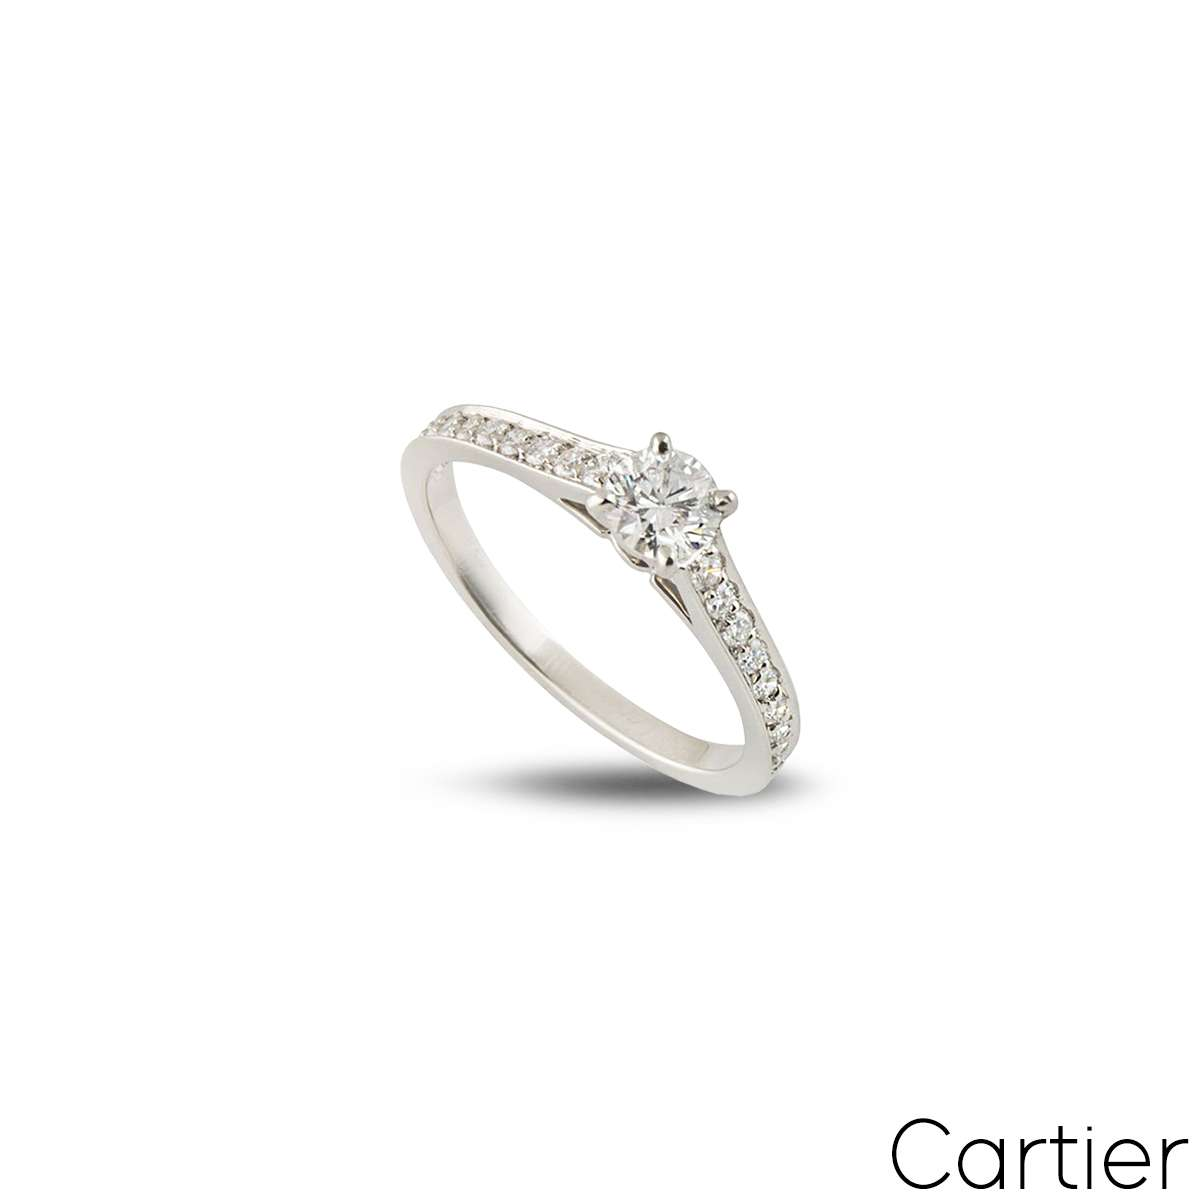 Cartier Platinum Diamond 1895 Solitaire Ring Size 47 N4164647